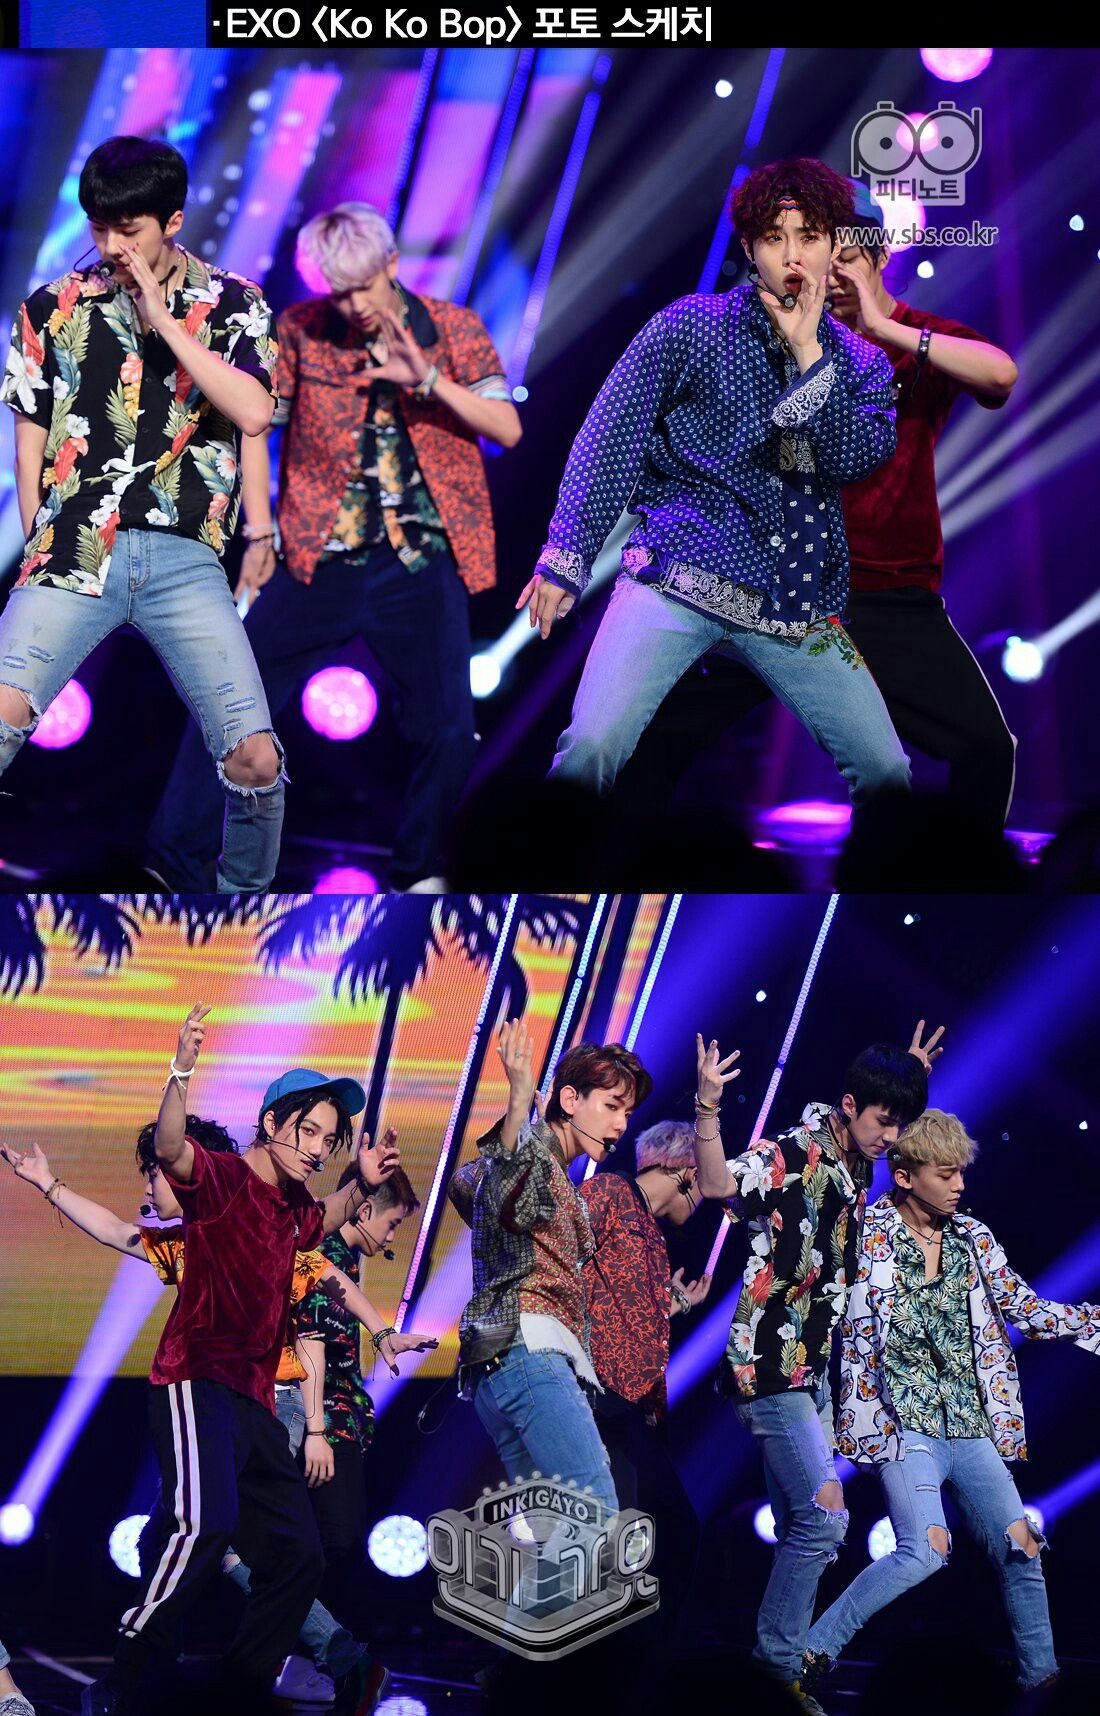 [170731] - SBS Inkigayo PD Note website update with #EXO